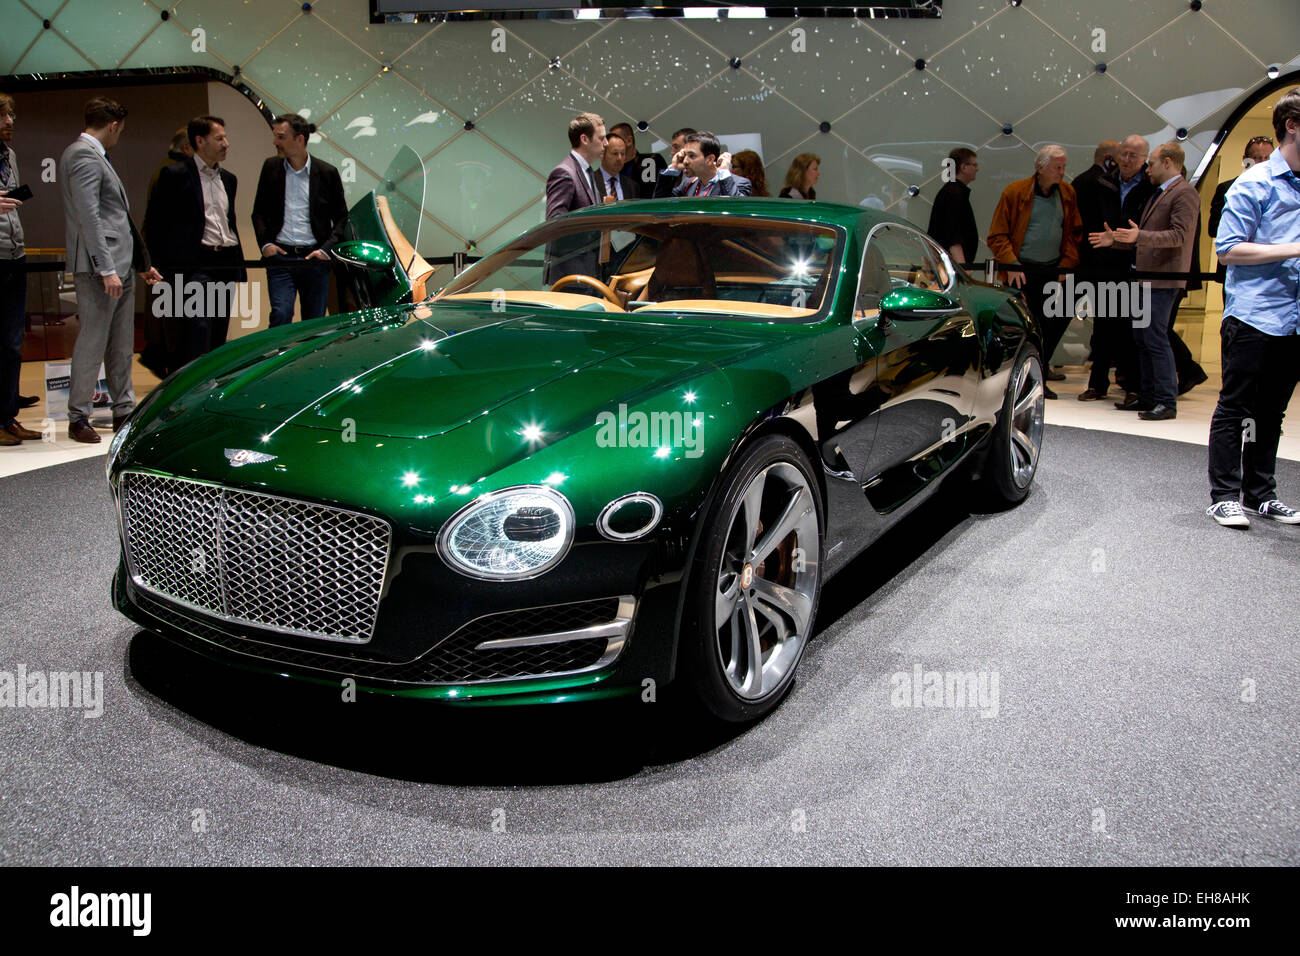 Bentley Exp 10 >> Bentley Exp 10 Speed 6 Concept At The Geneva Motor Show 2015